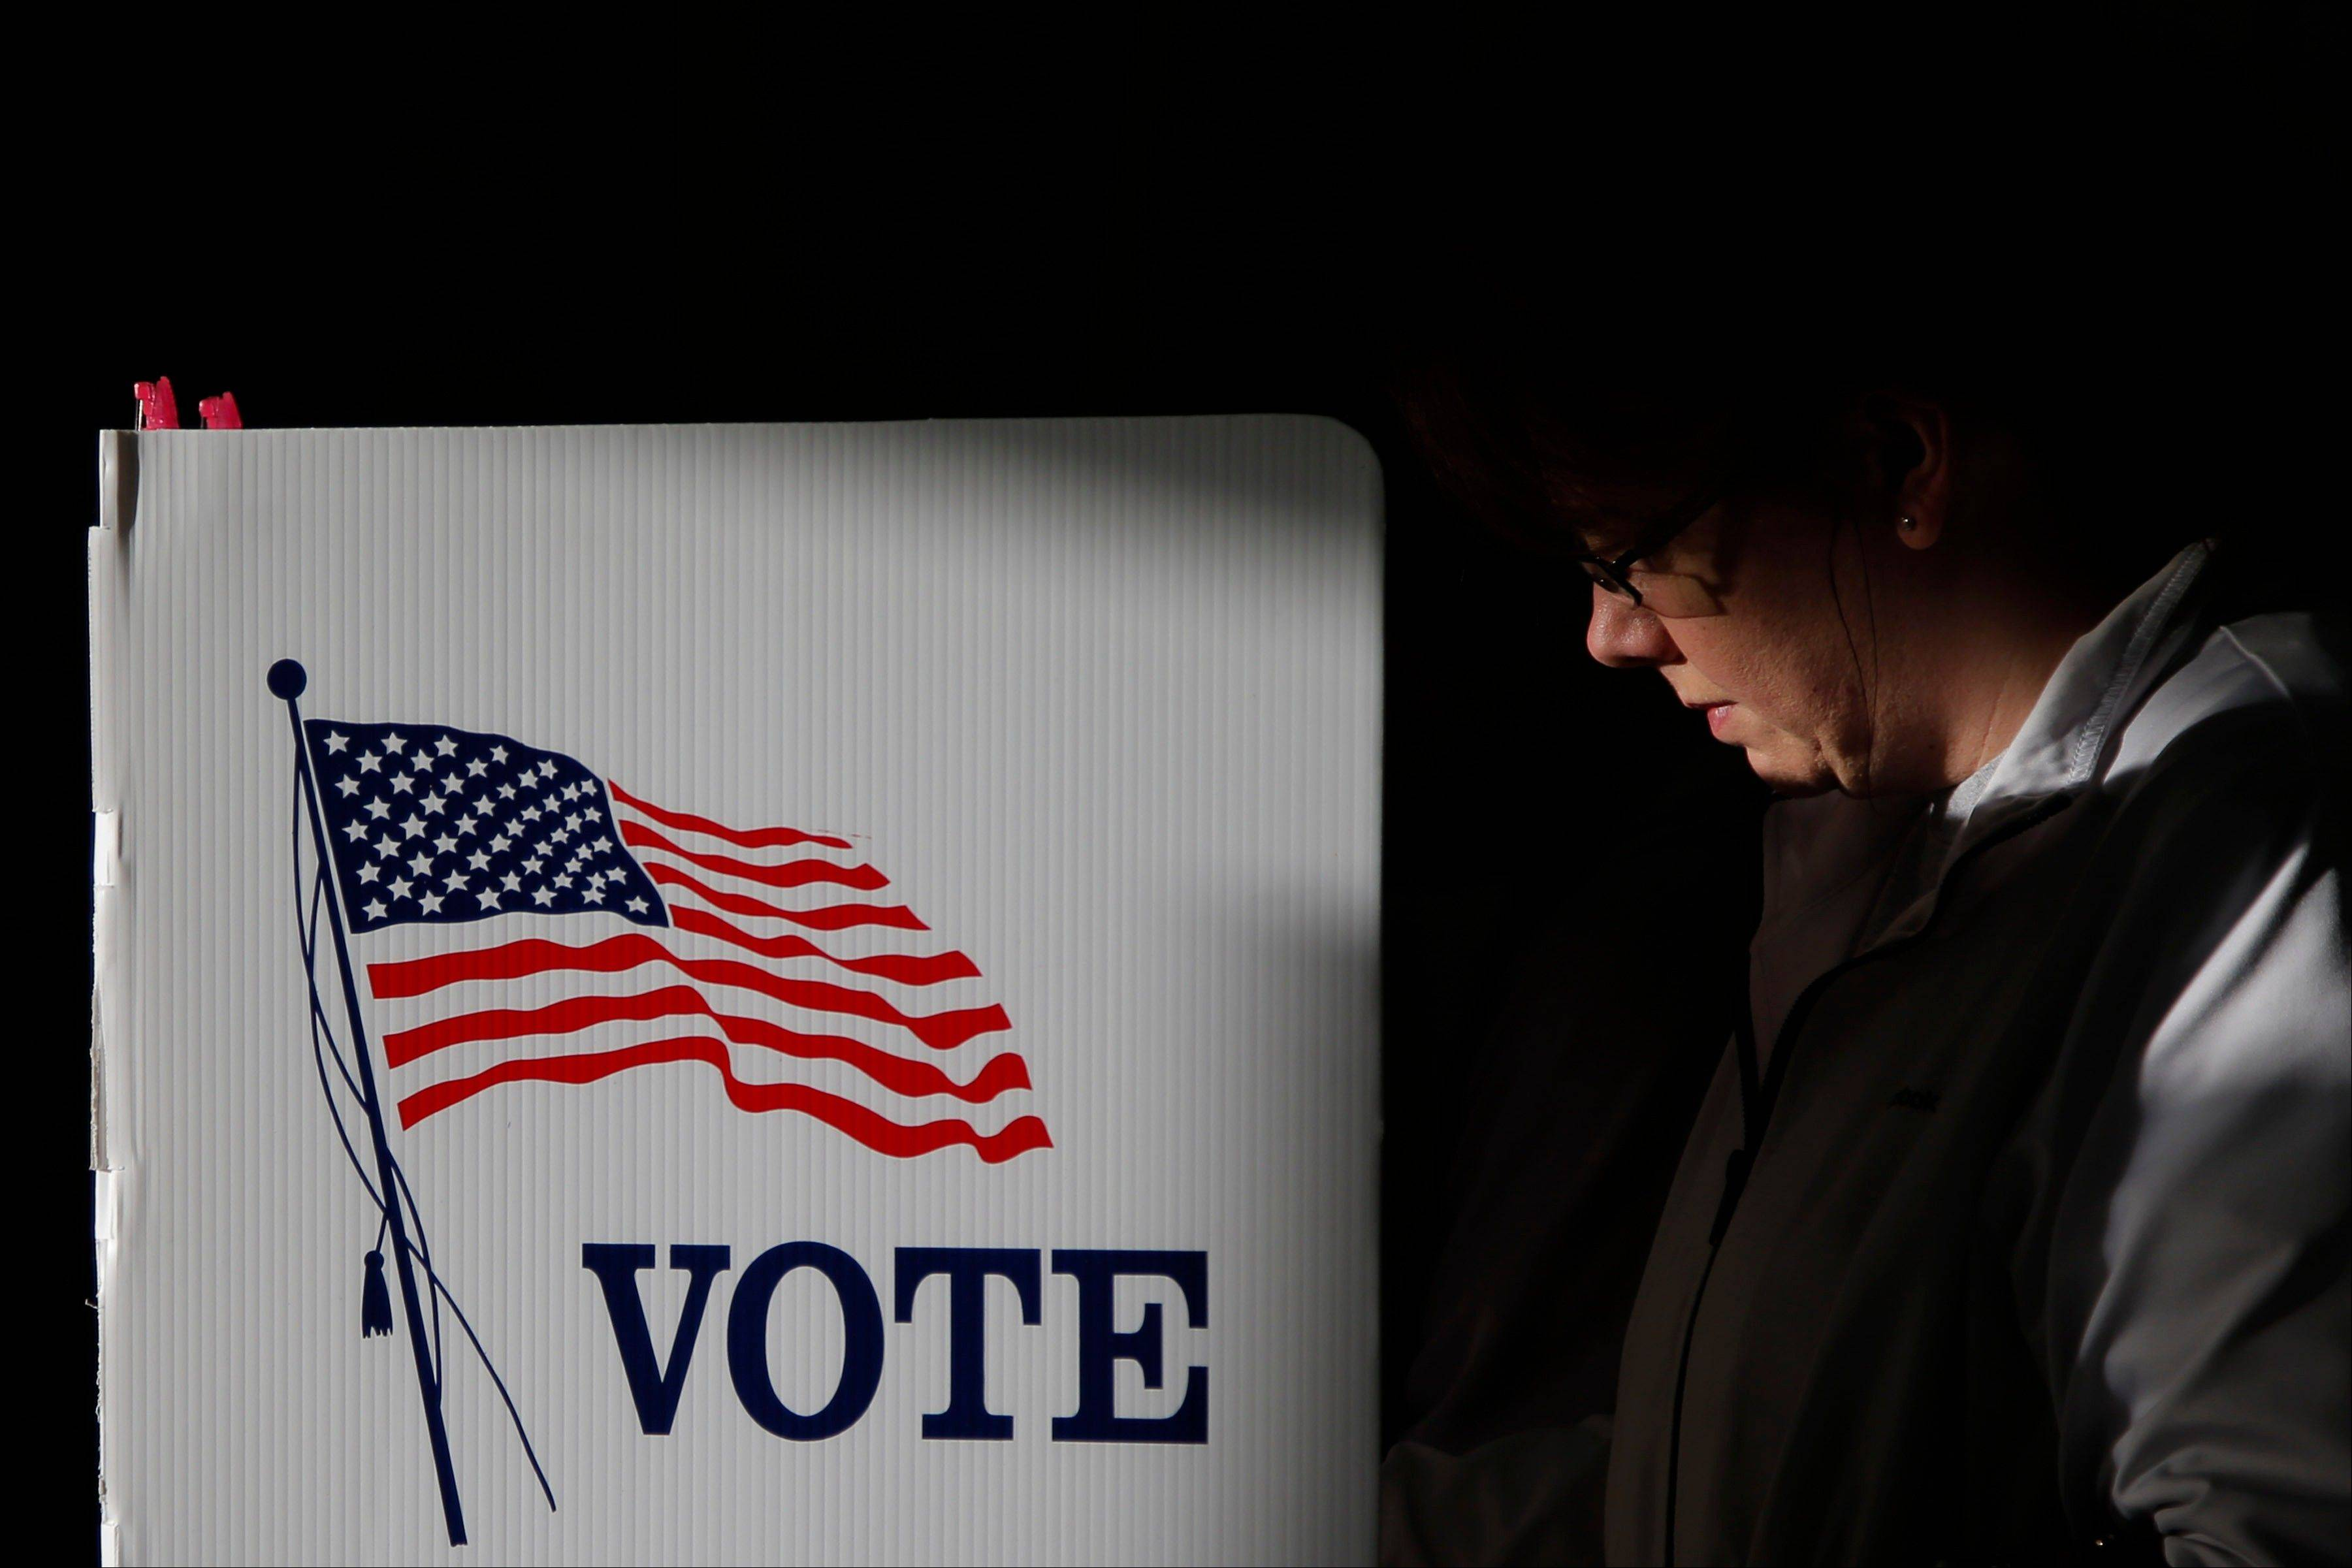 Kristi Voegele is illuminated by sunlight as she casts a ballot at a polling place in Billings, Mont., Tuesday, Nov. 6, 2012.